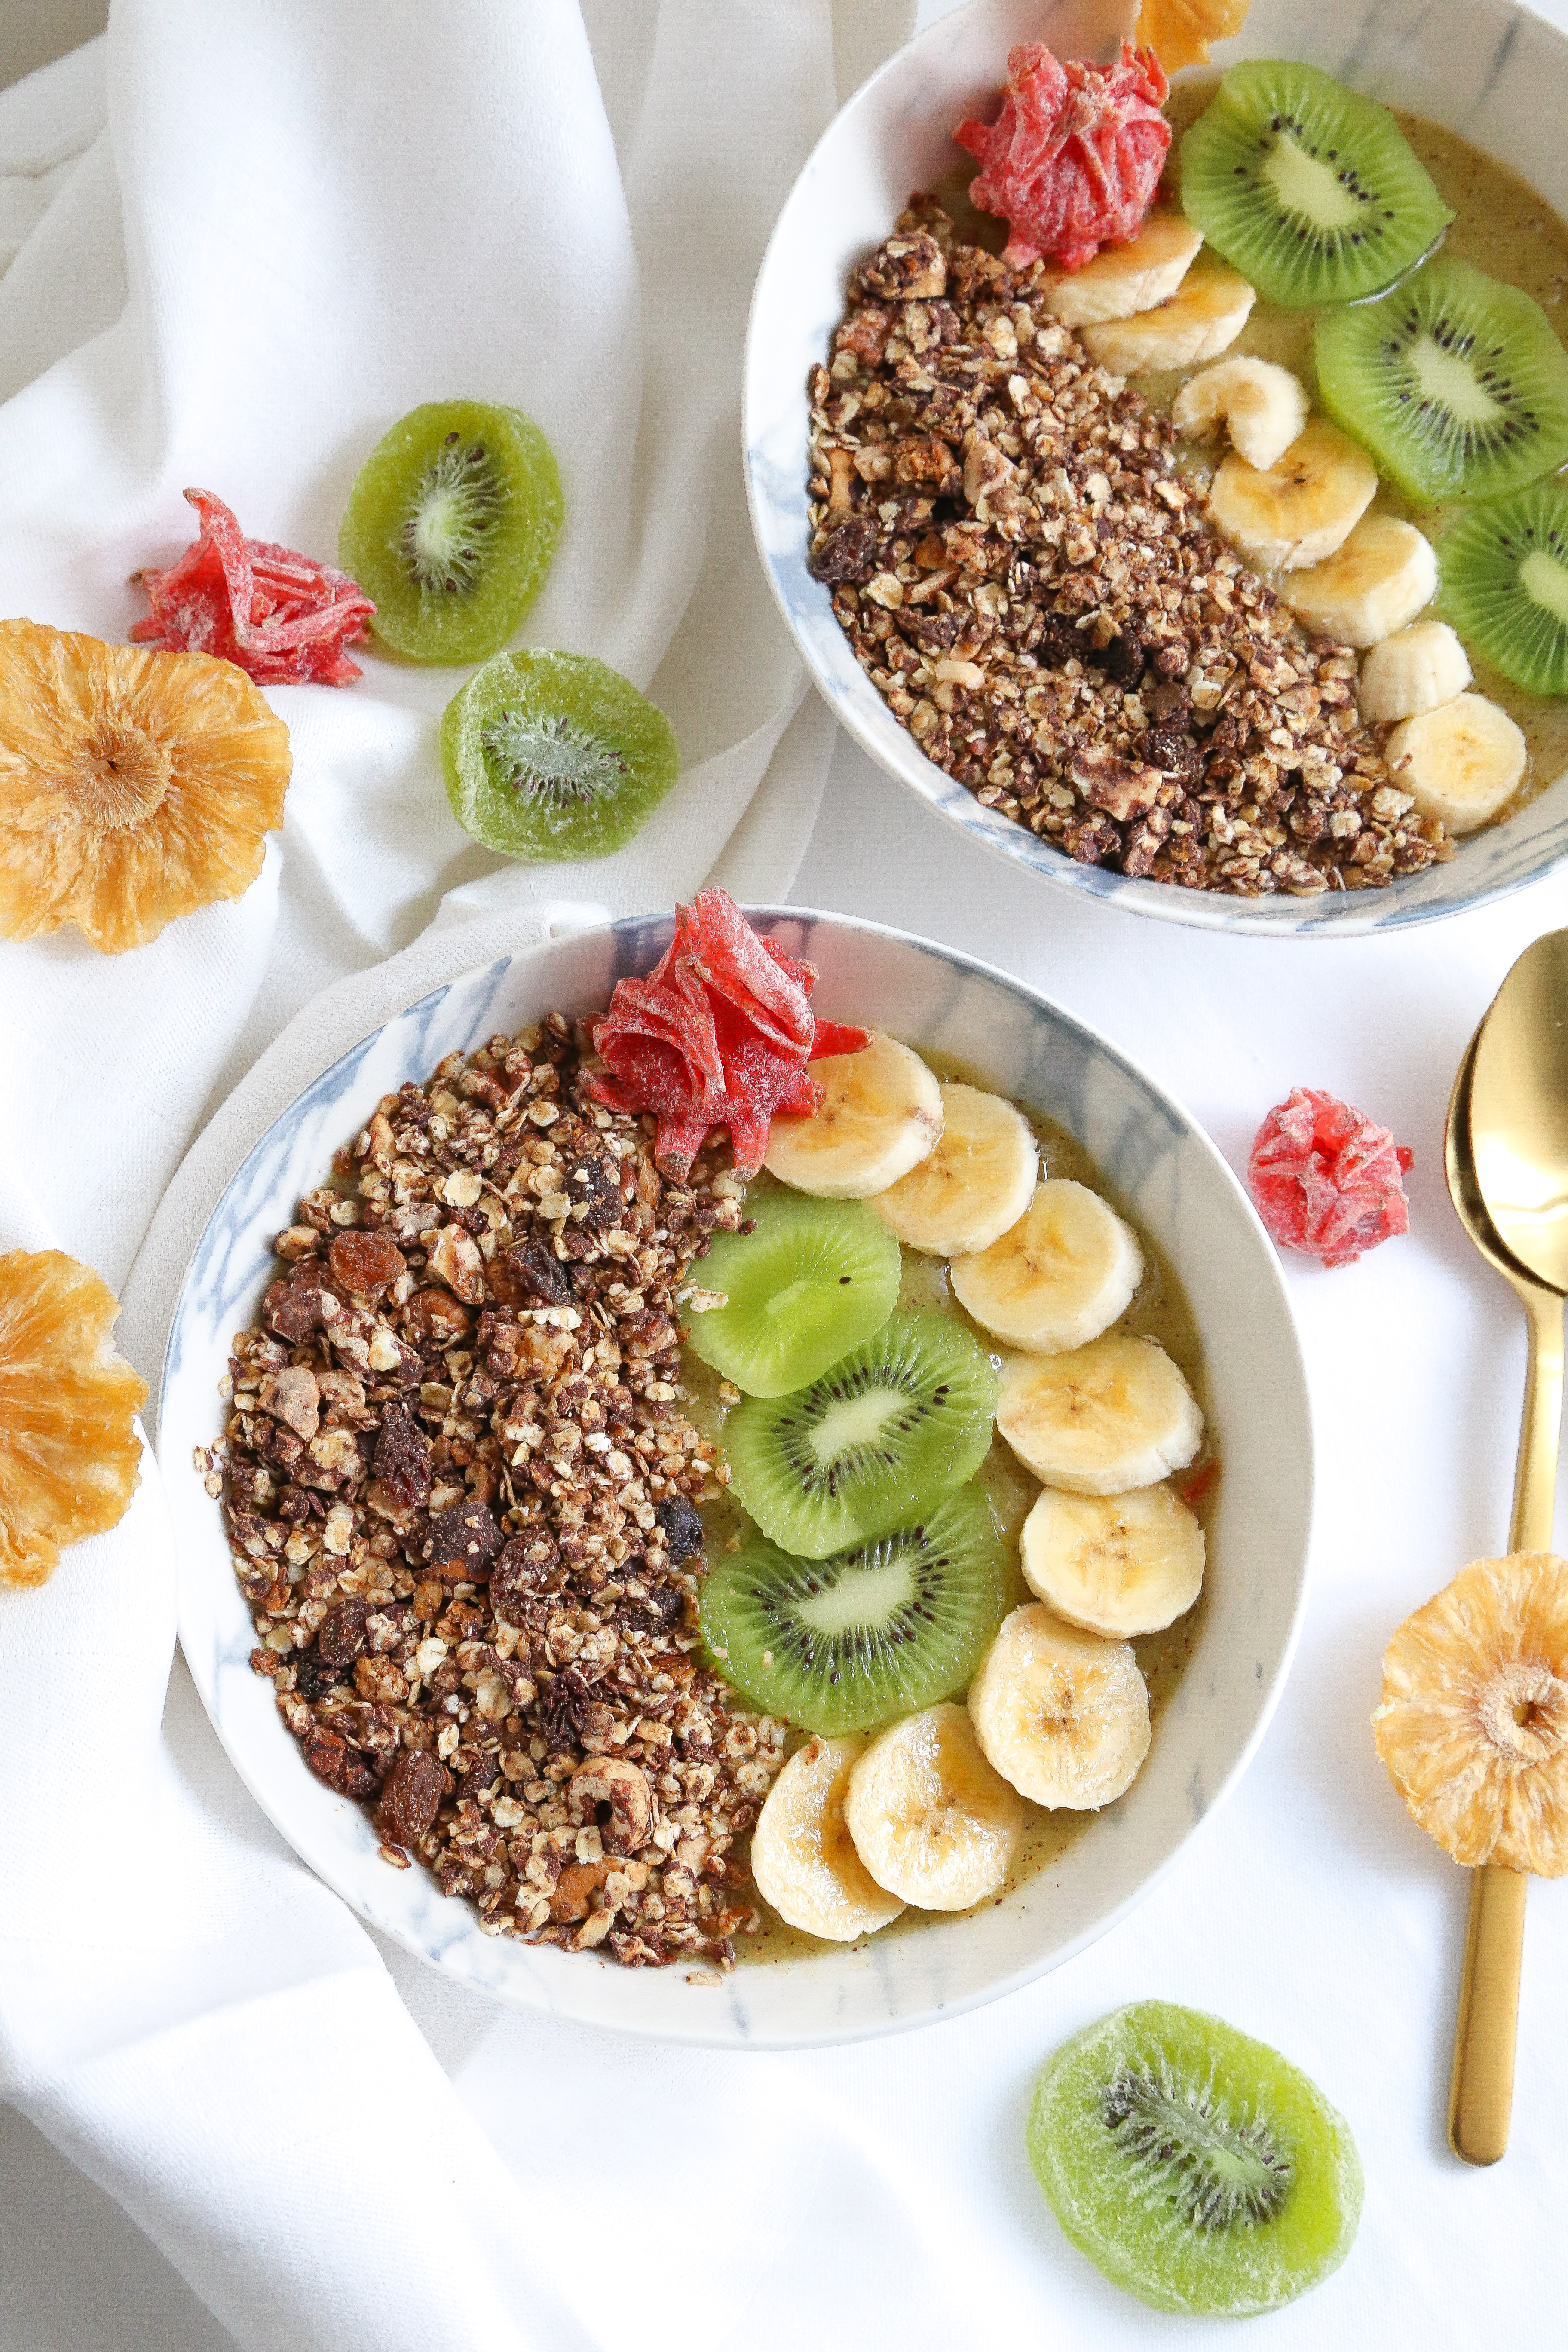 Smoothie bowl au kiwi et granola